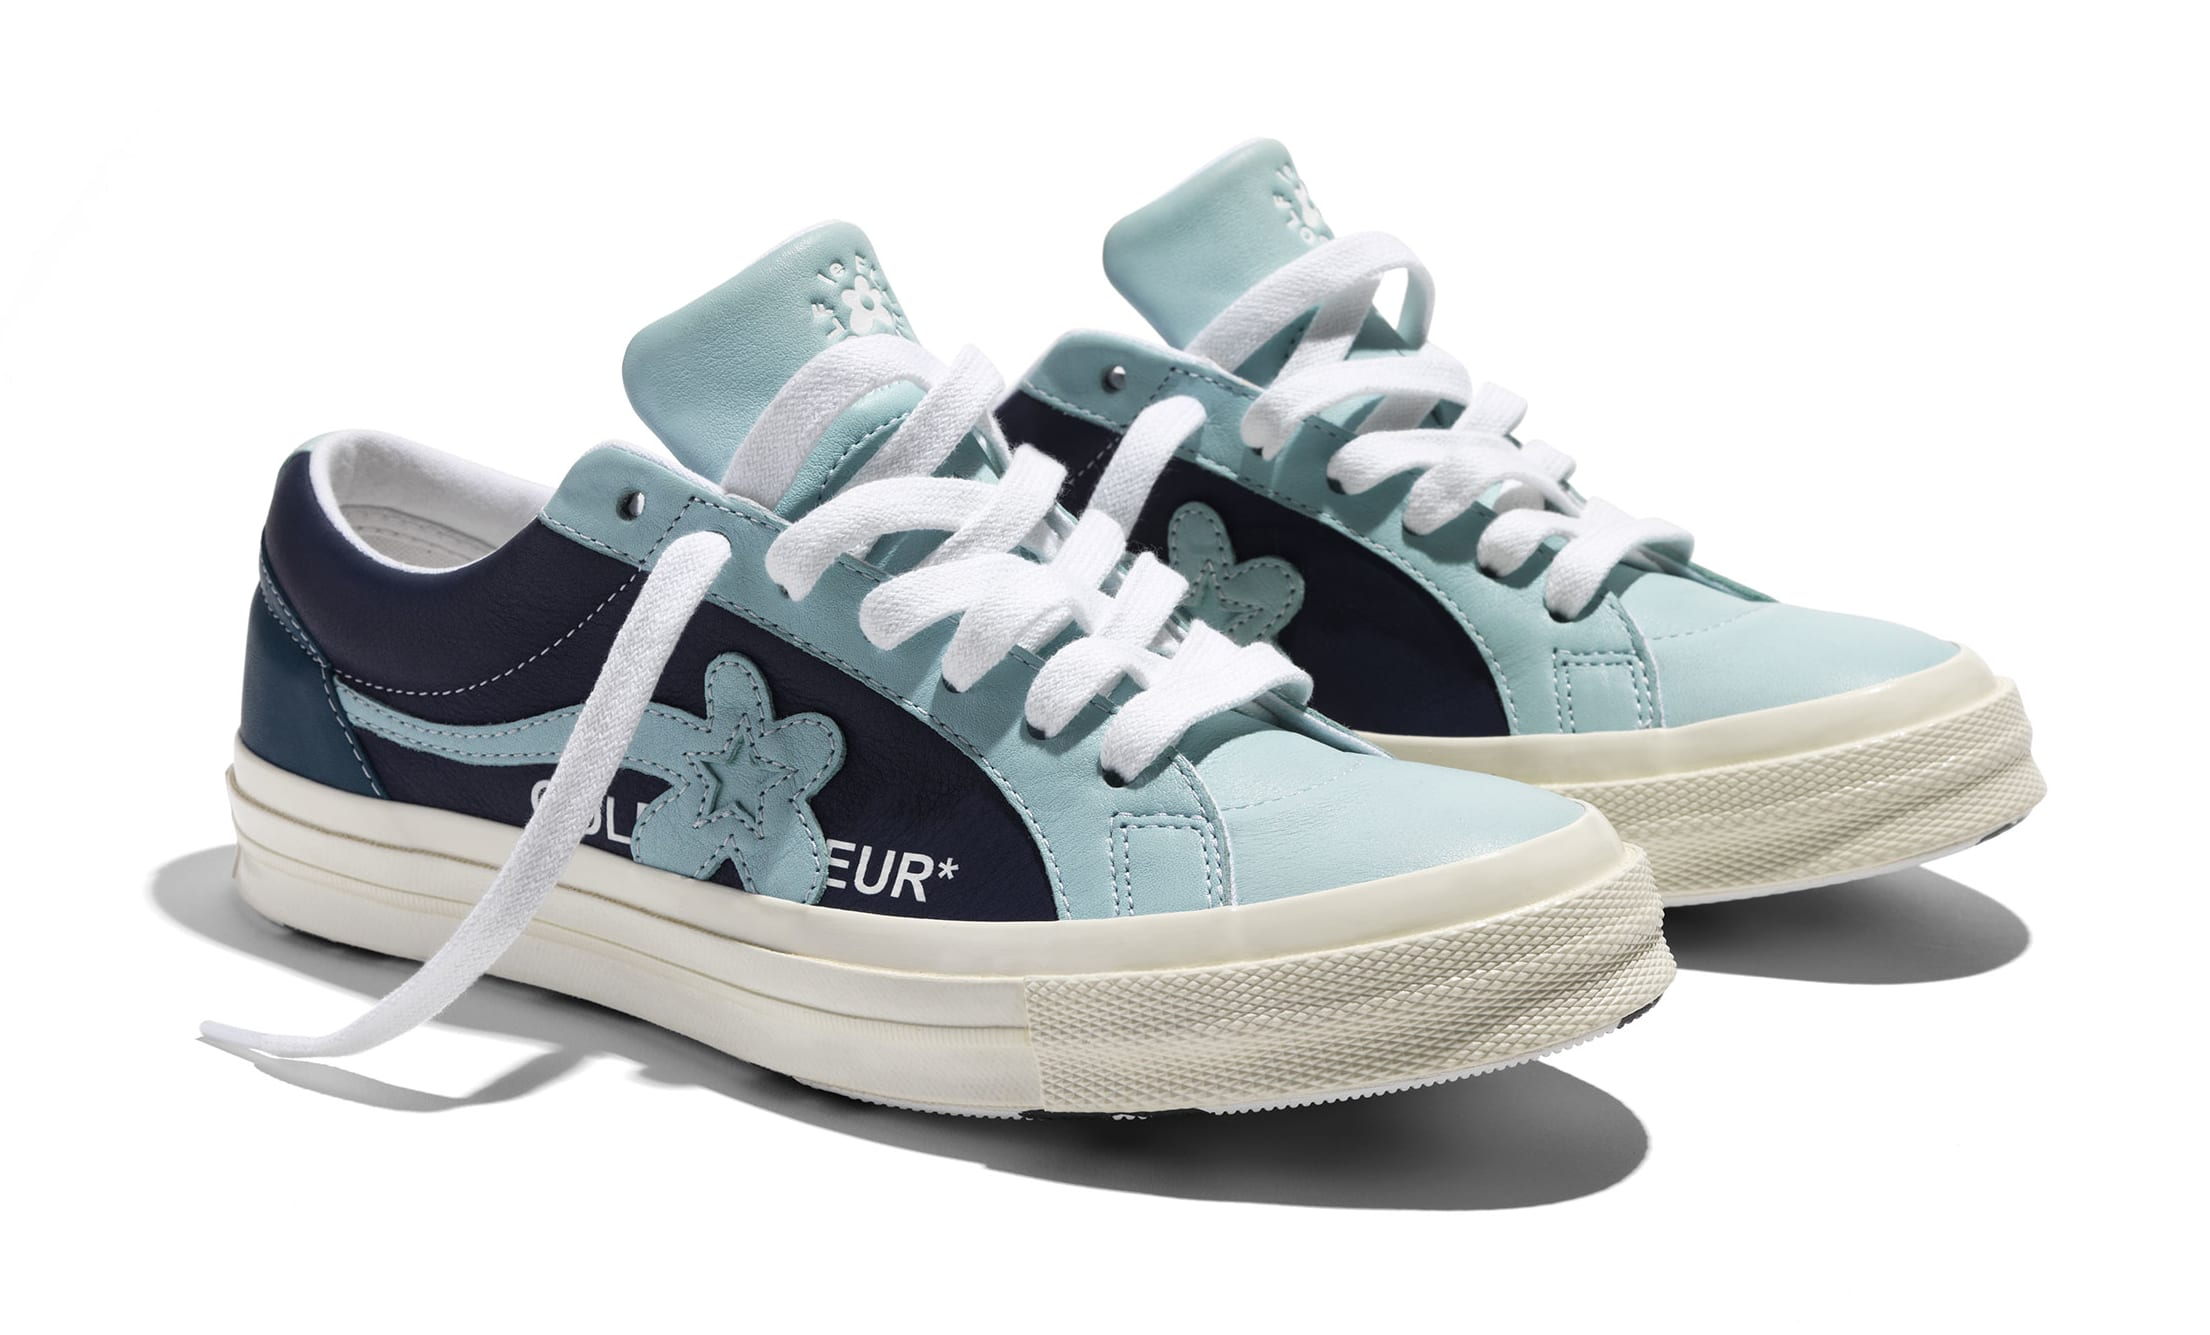 Tyler, the Creator x Converse Golf Le Fleur 'Industrial Pack' 164024 (paire)